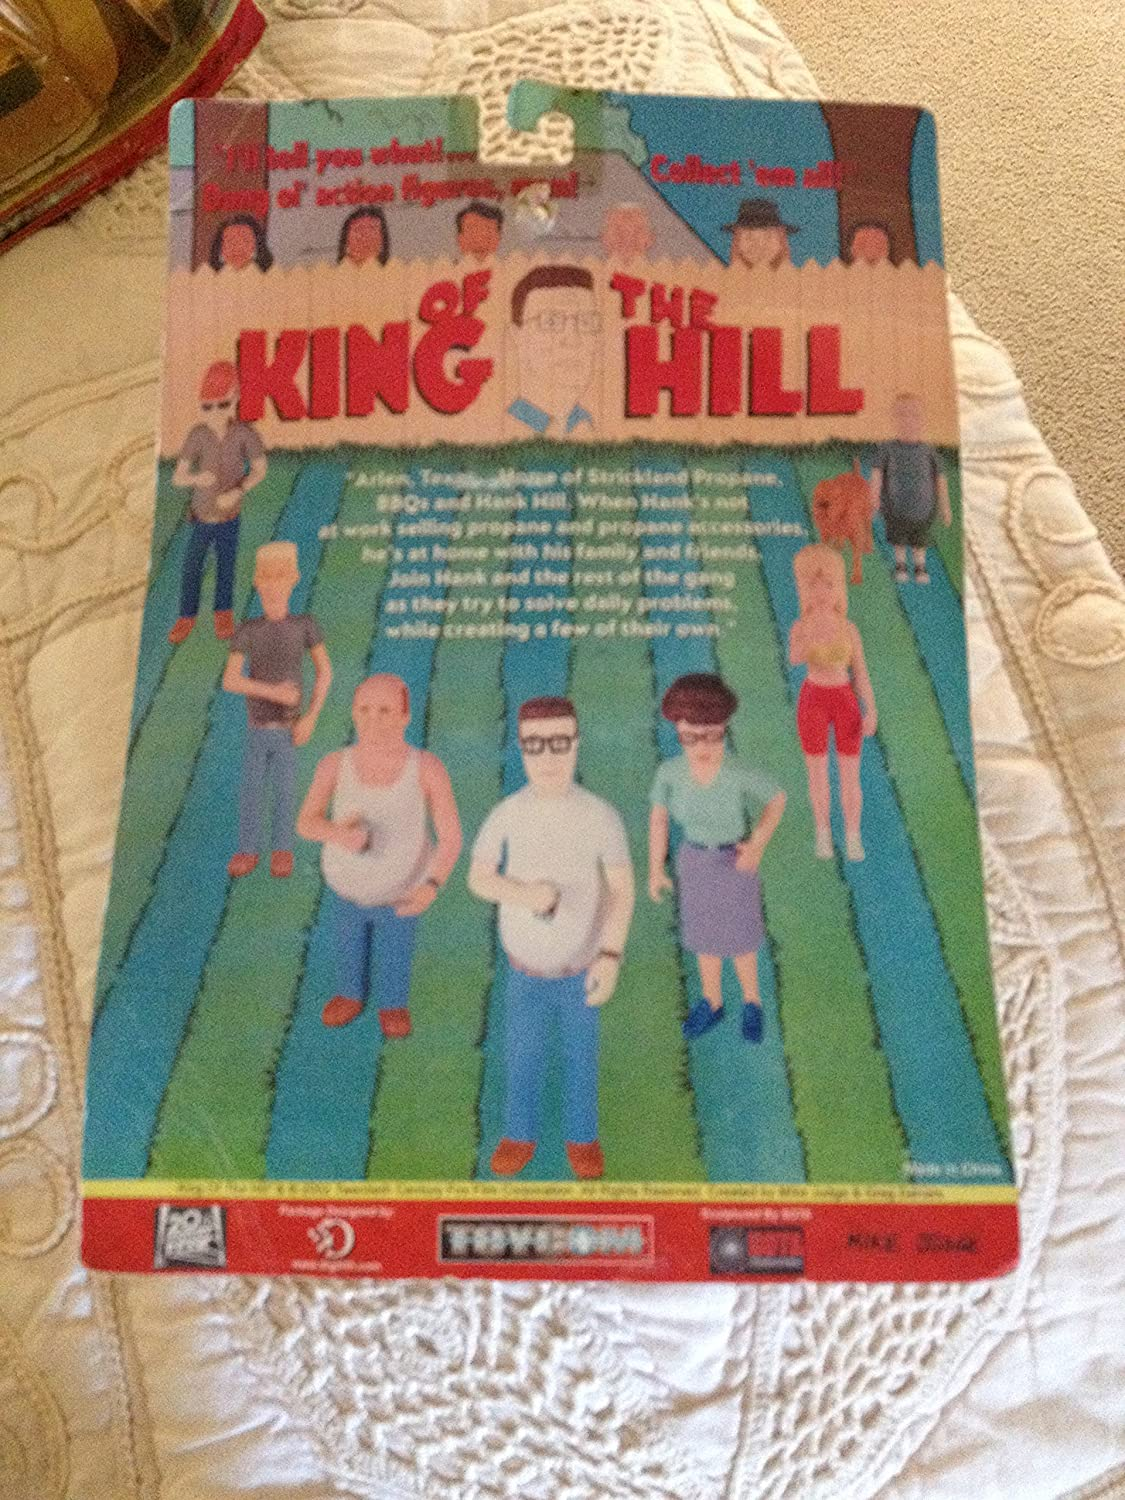 Dale Gribble Action Figure Toycom SG/_B000YPS9WW/_US King of the Hill